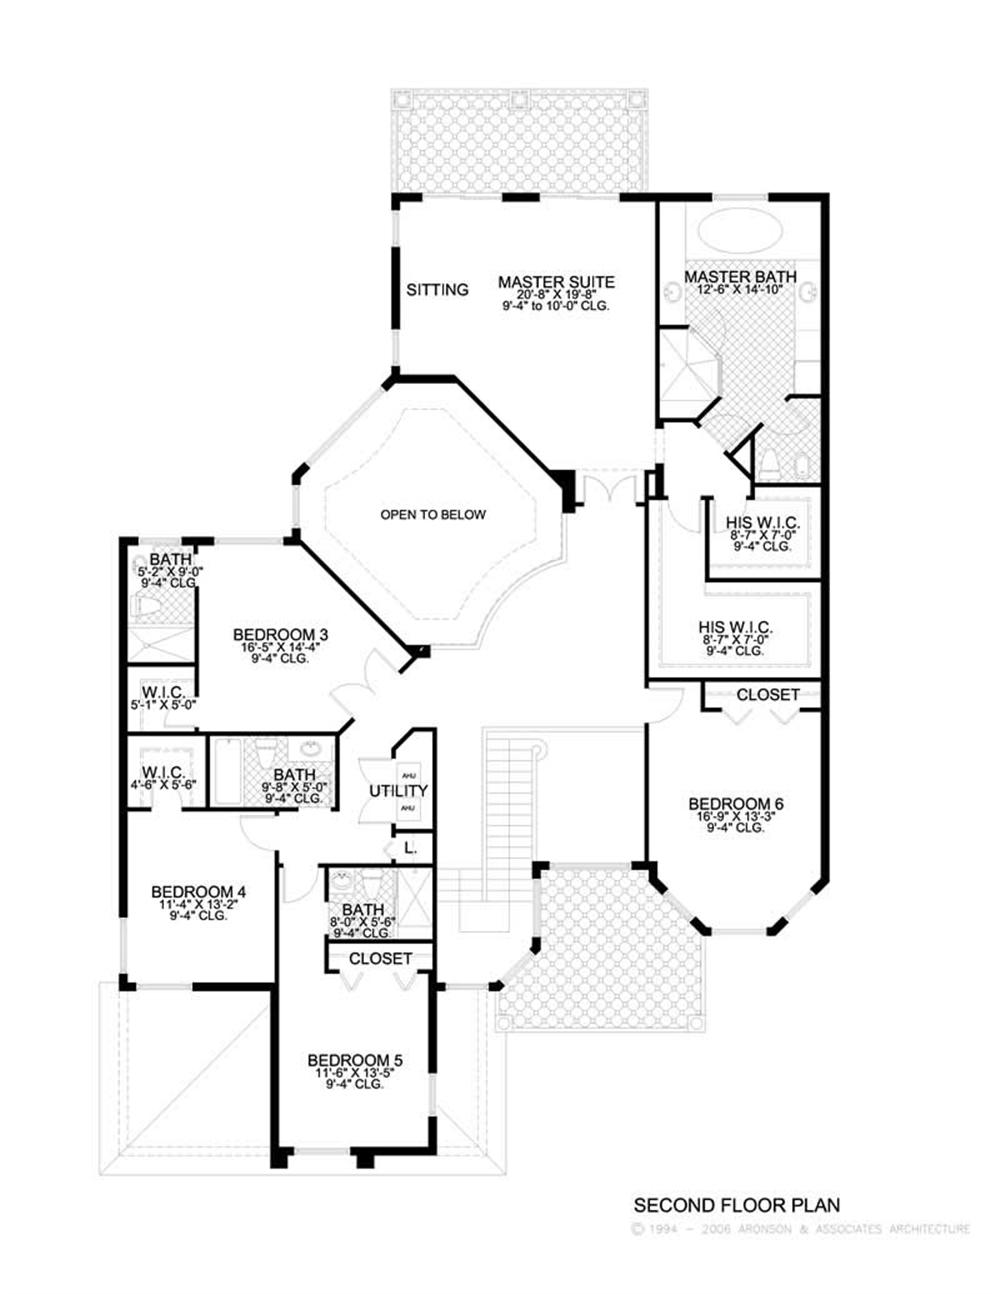 This image shows the living and areas of the upper floor plan.